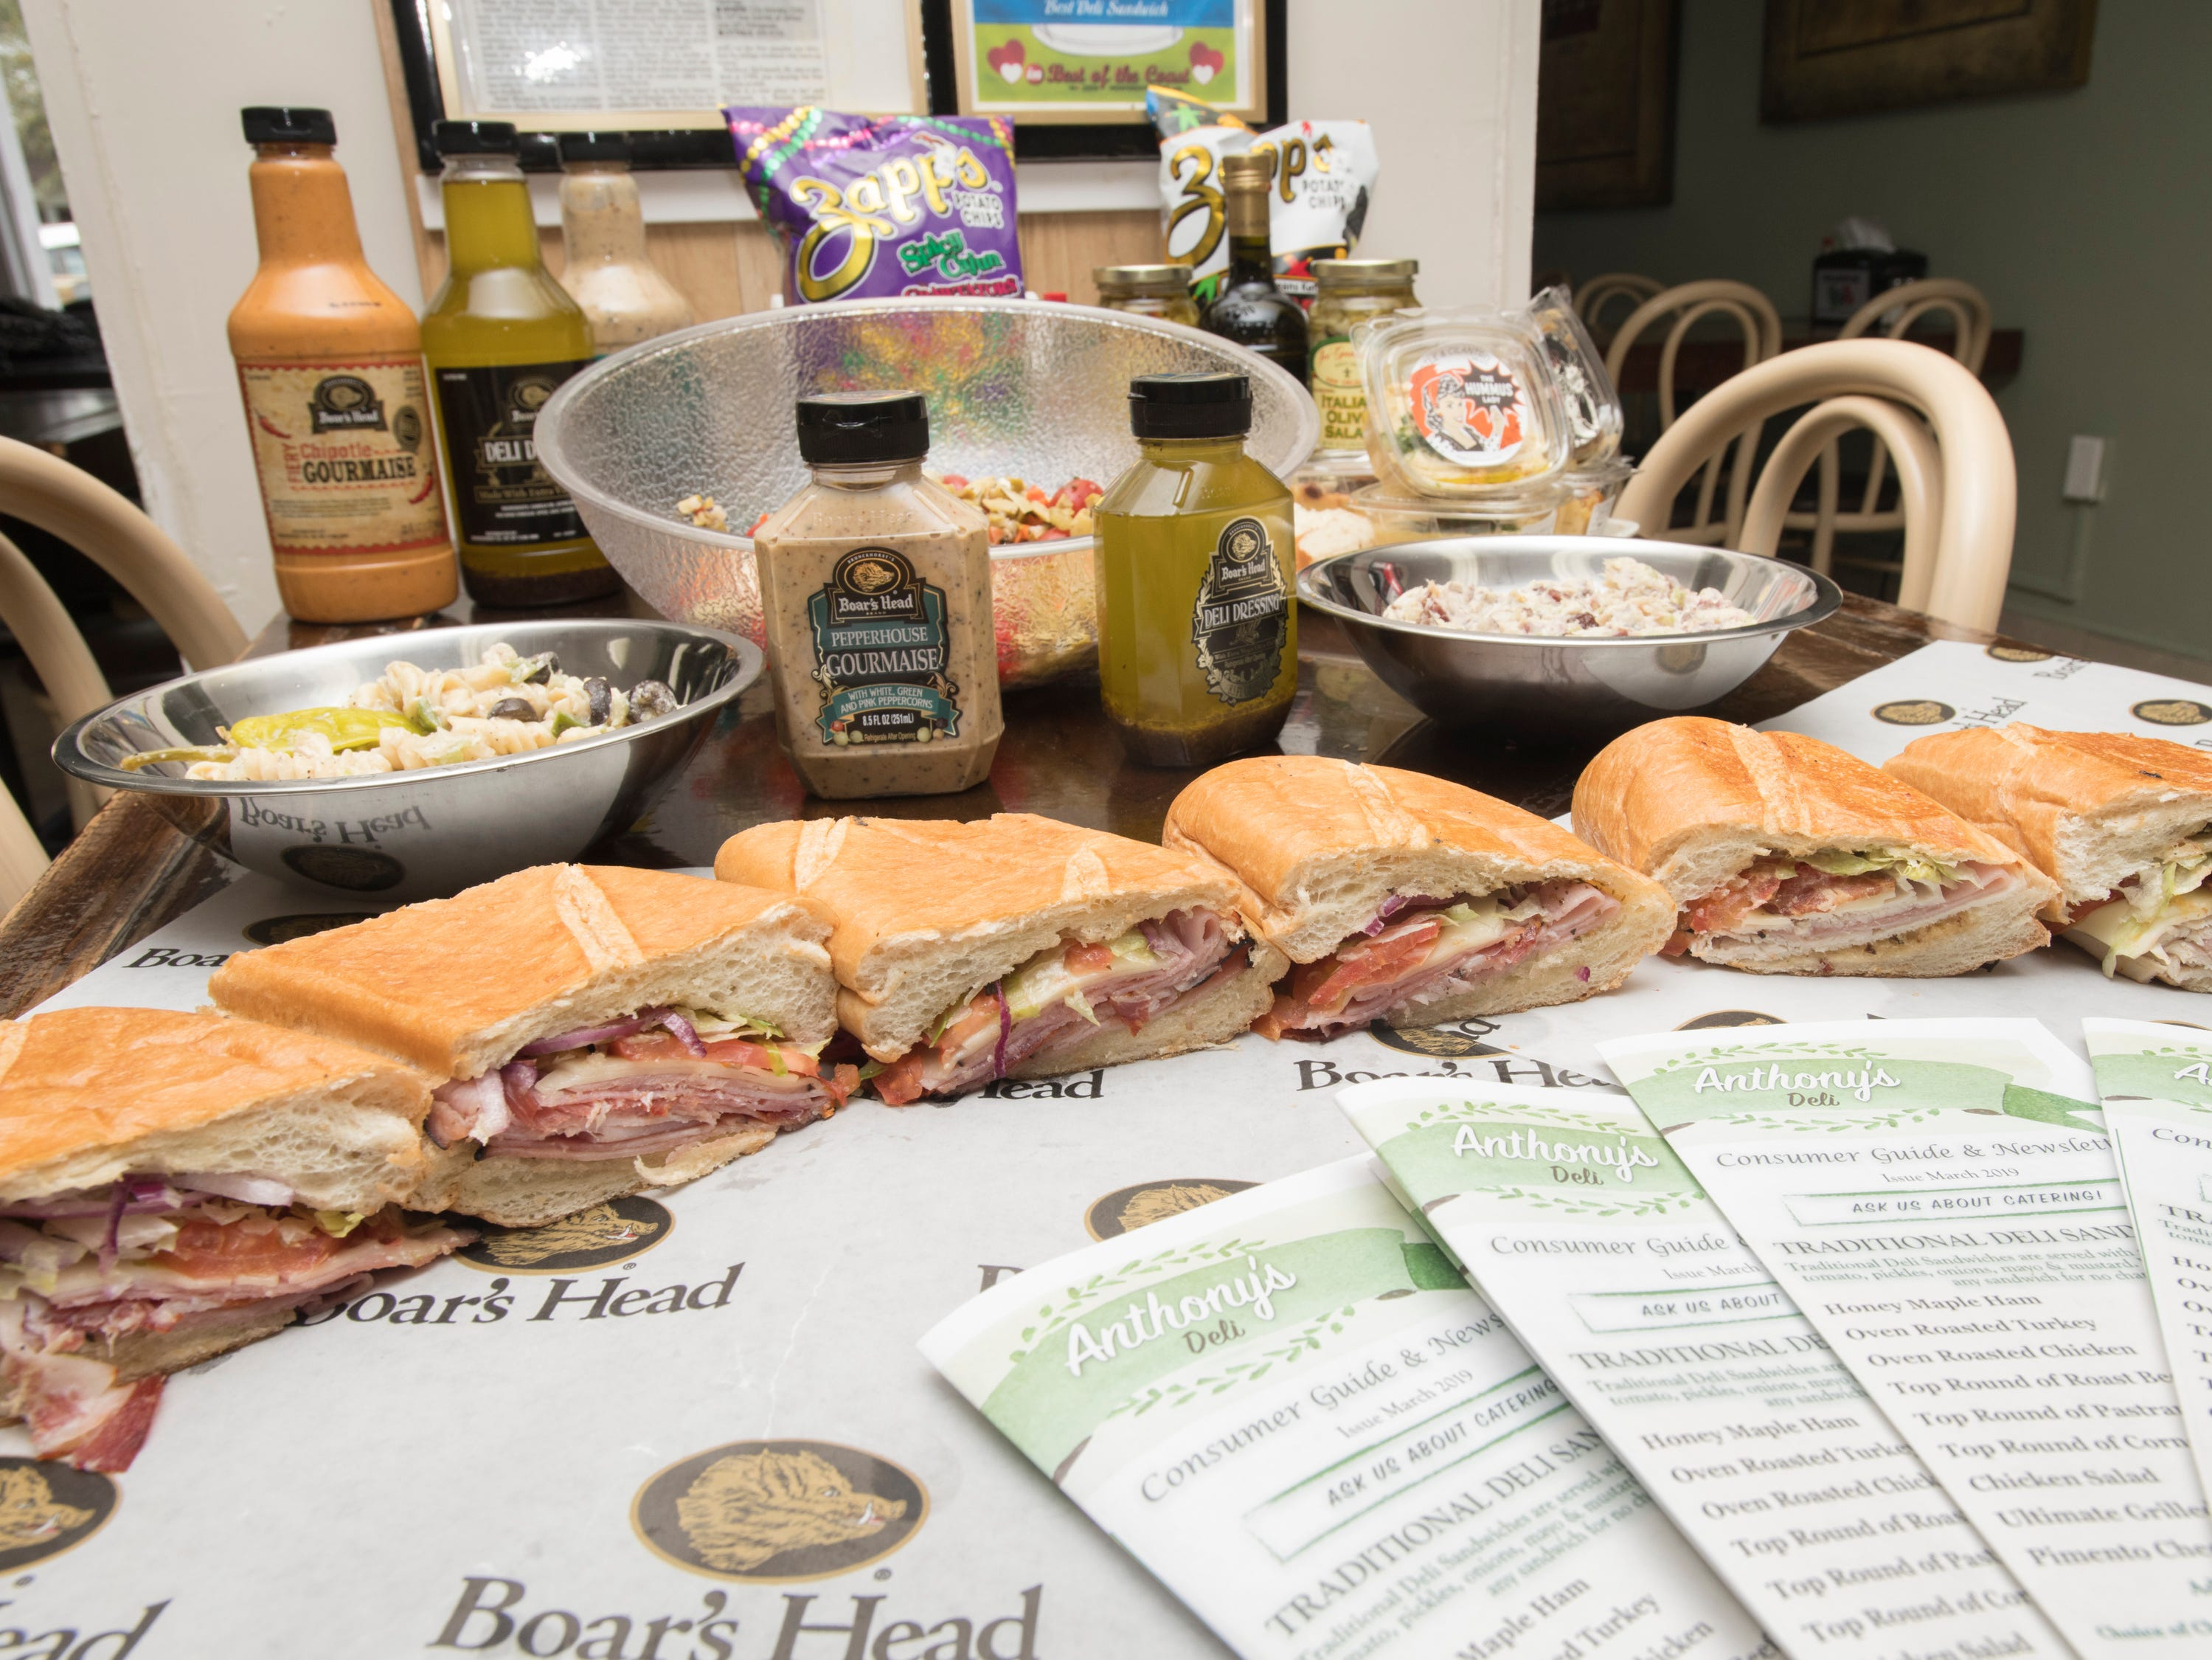 Anthony's Deli on Lilian Highway in Pensacola on Monday, March 25, 2019.